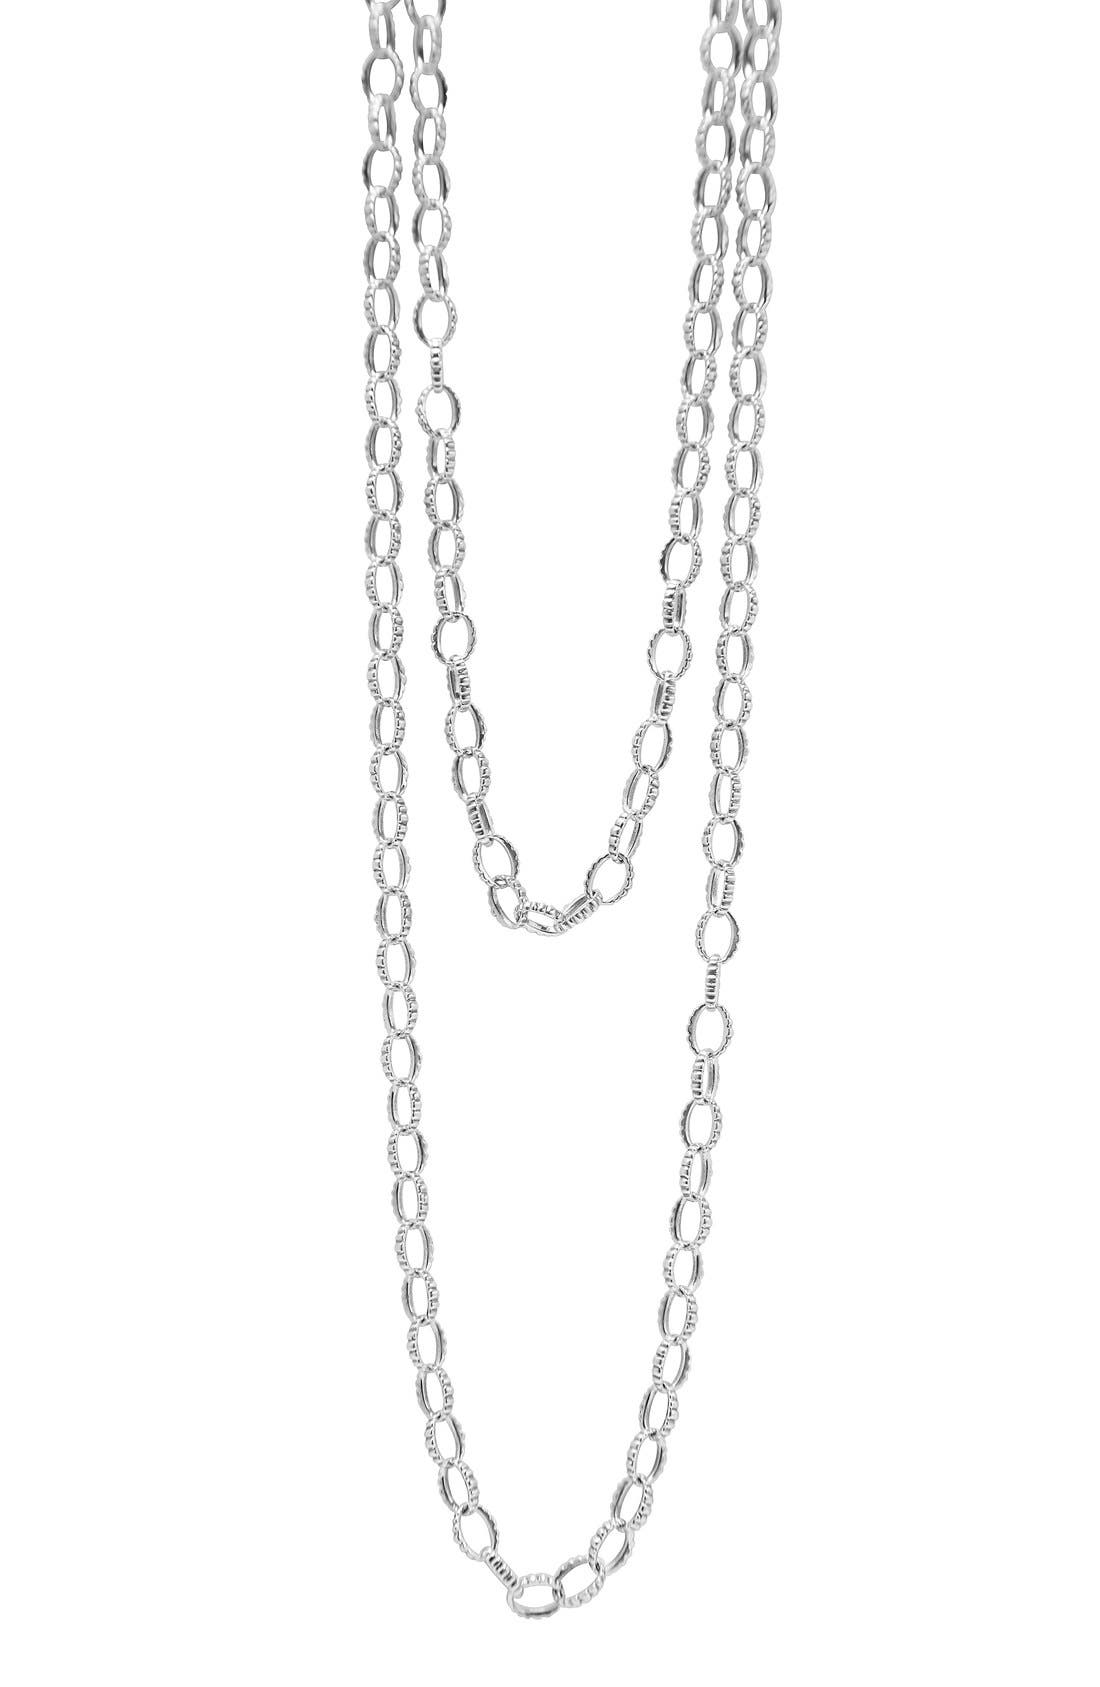 Main Image - LAGOS Long Link Necklace